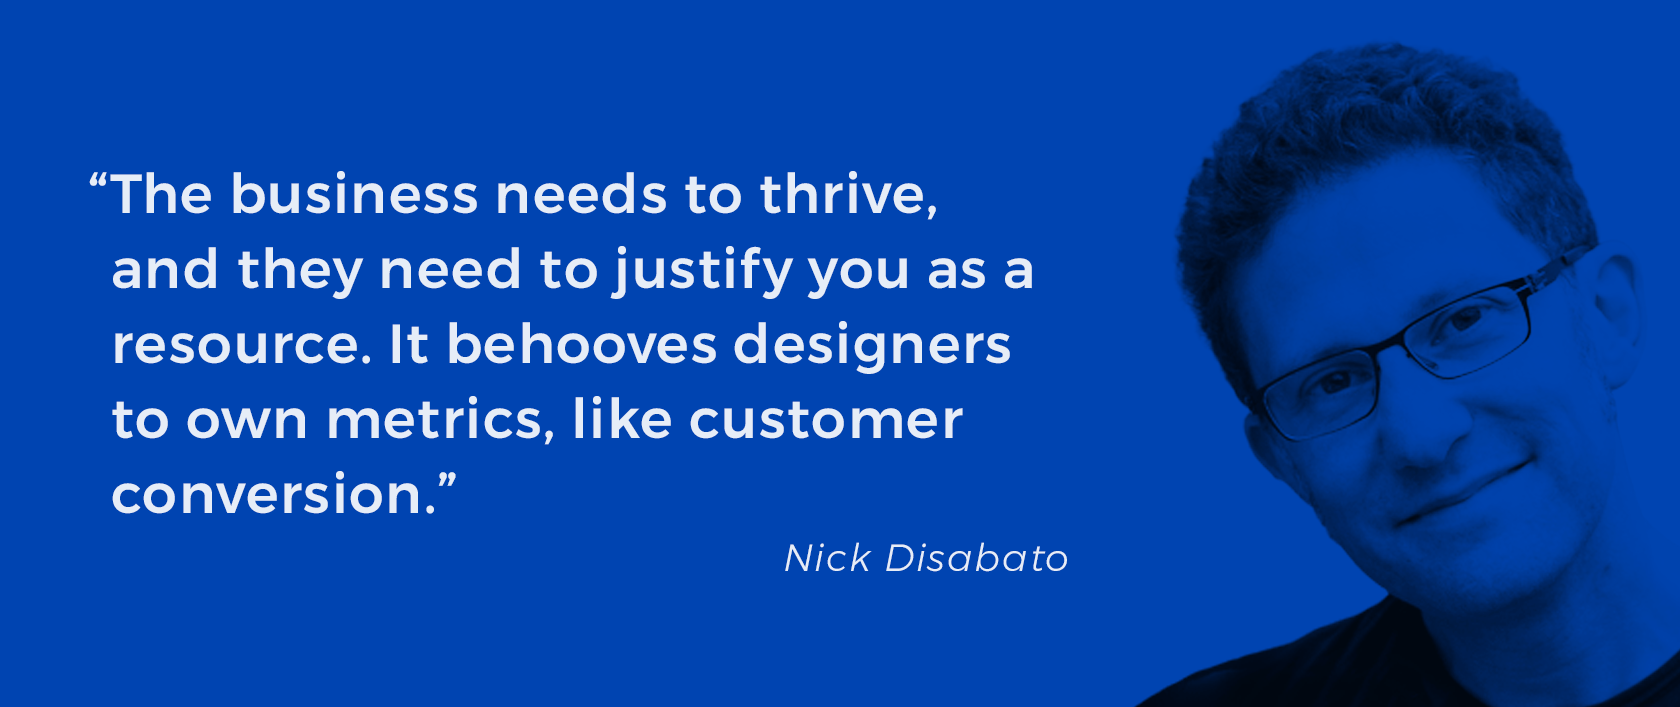 Value based design with Nick Disabato.